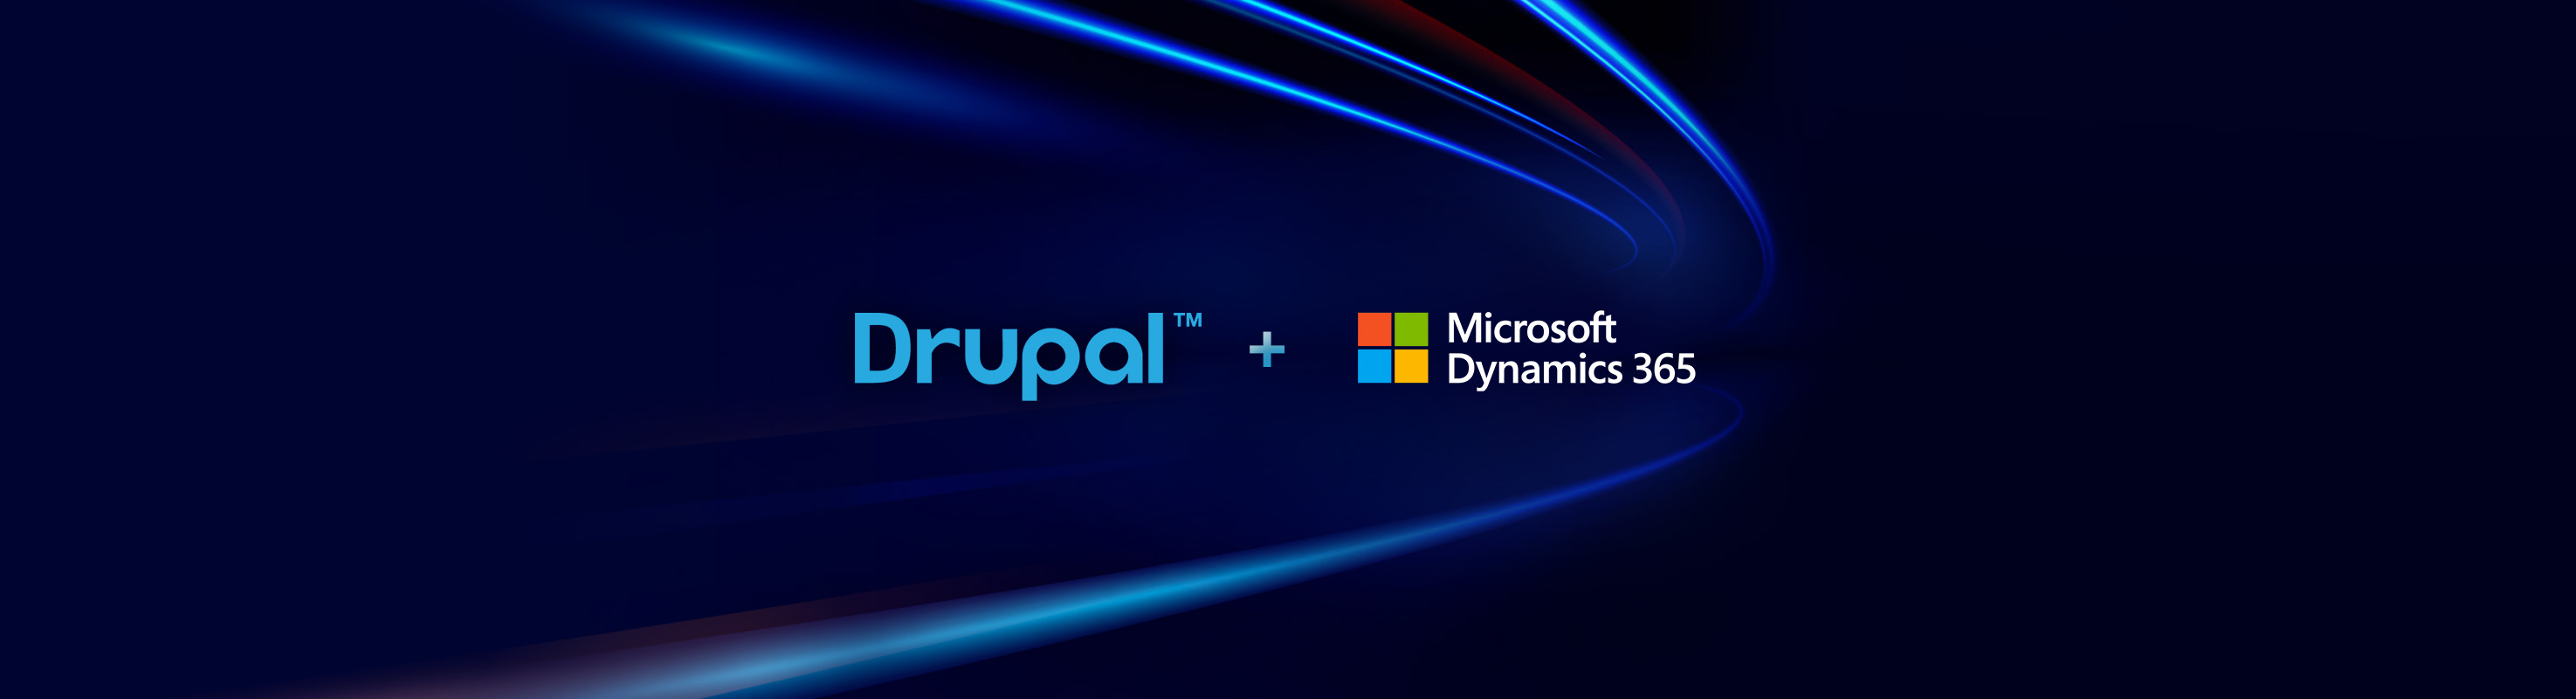 drupal and dynamics integration